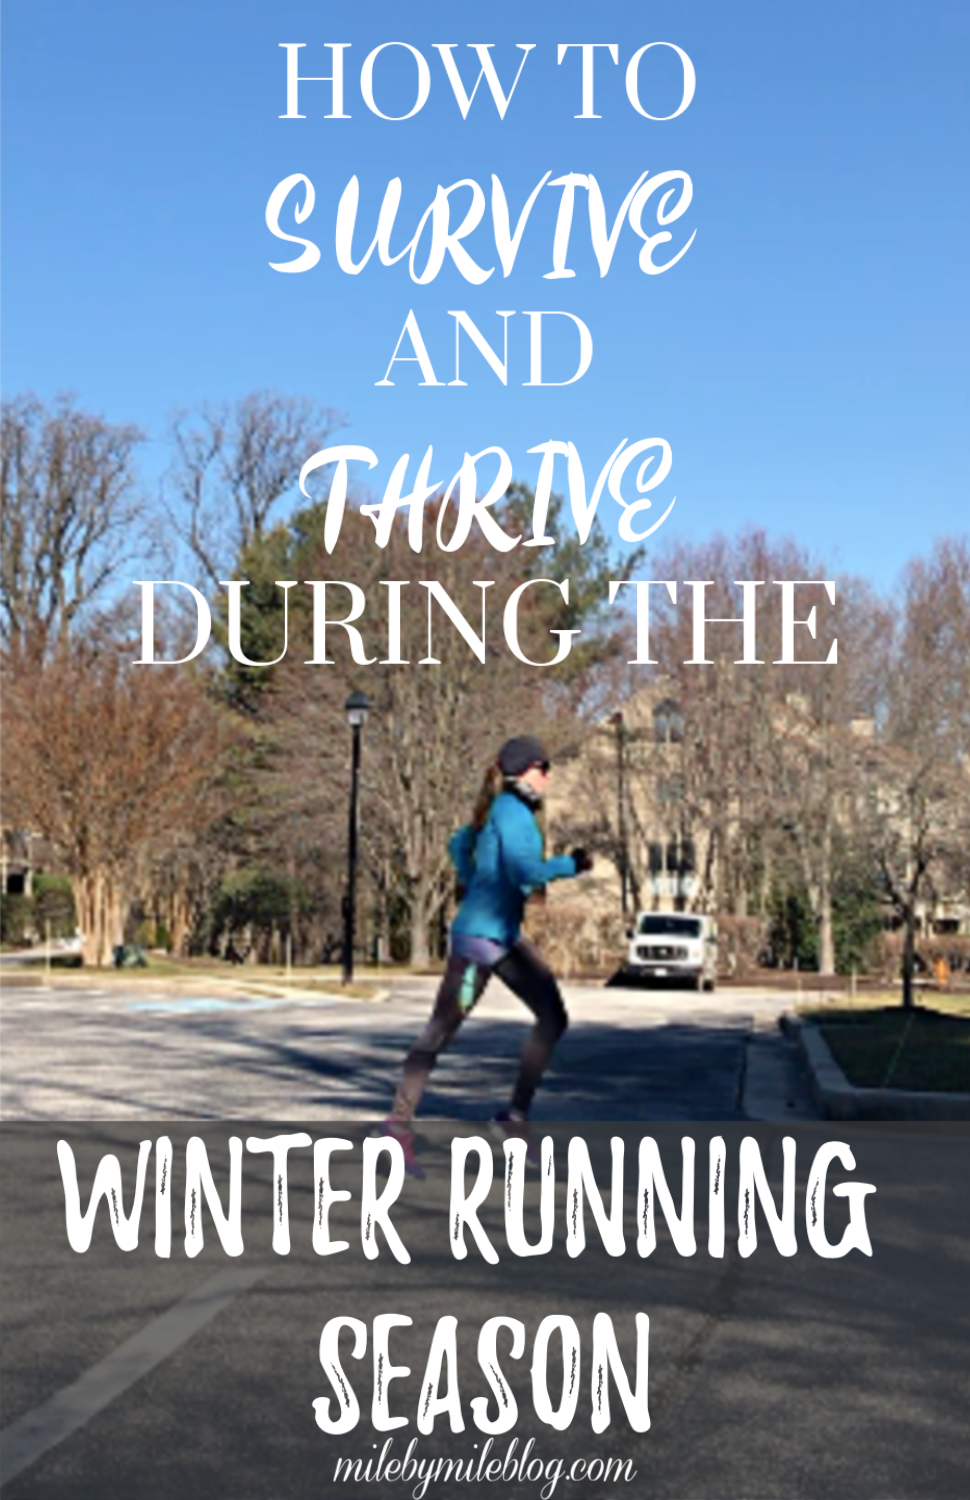 Tips for how to survive and thrive as a runner during the cold winter running season. Keep up with your workouts and go into the spring racing season feeling strong! #running #runningtips #winterrunning